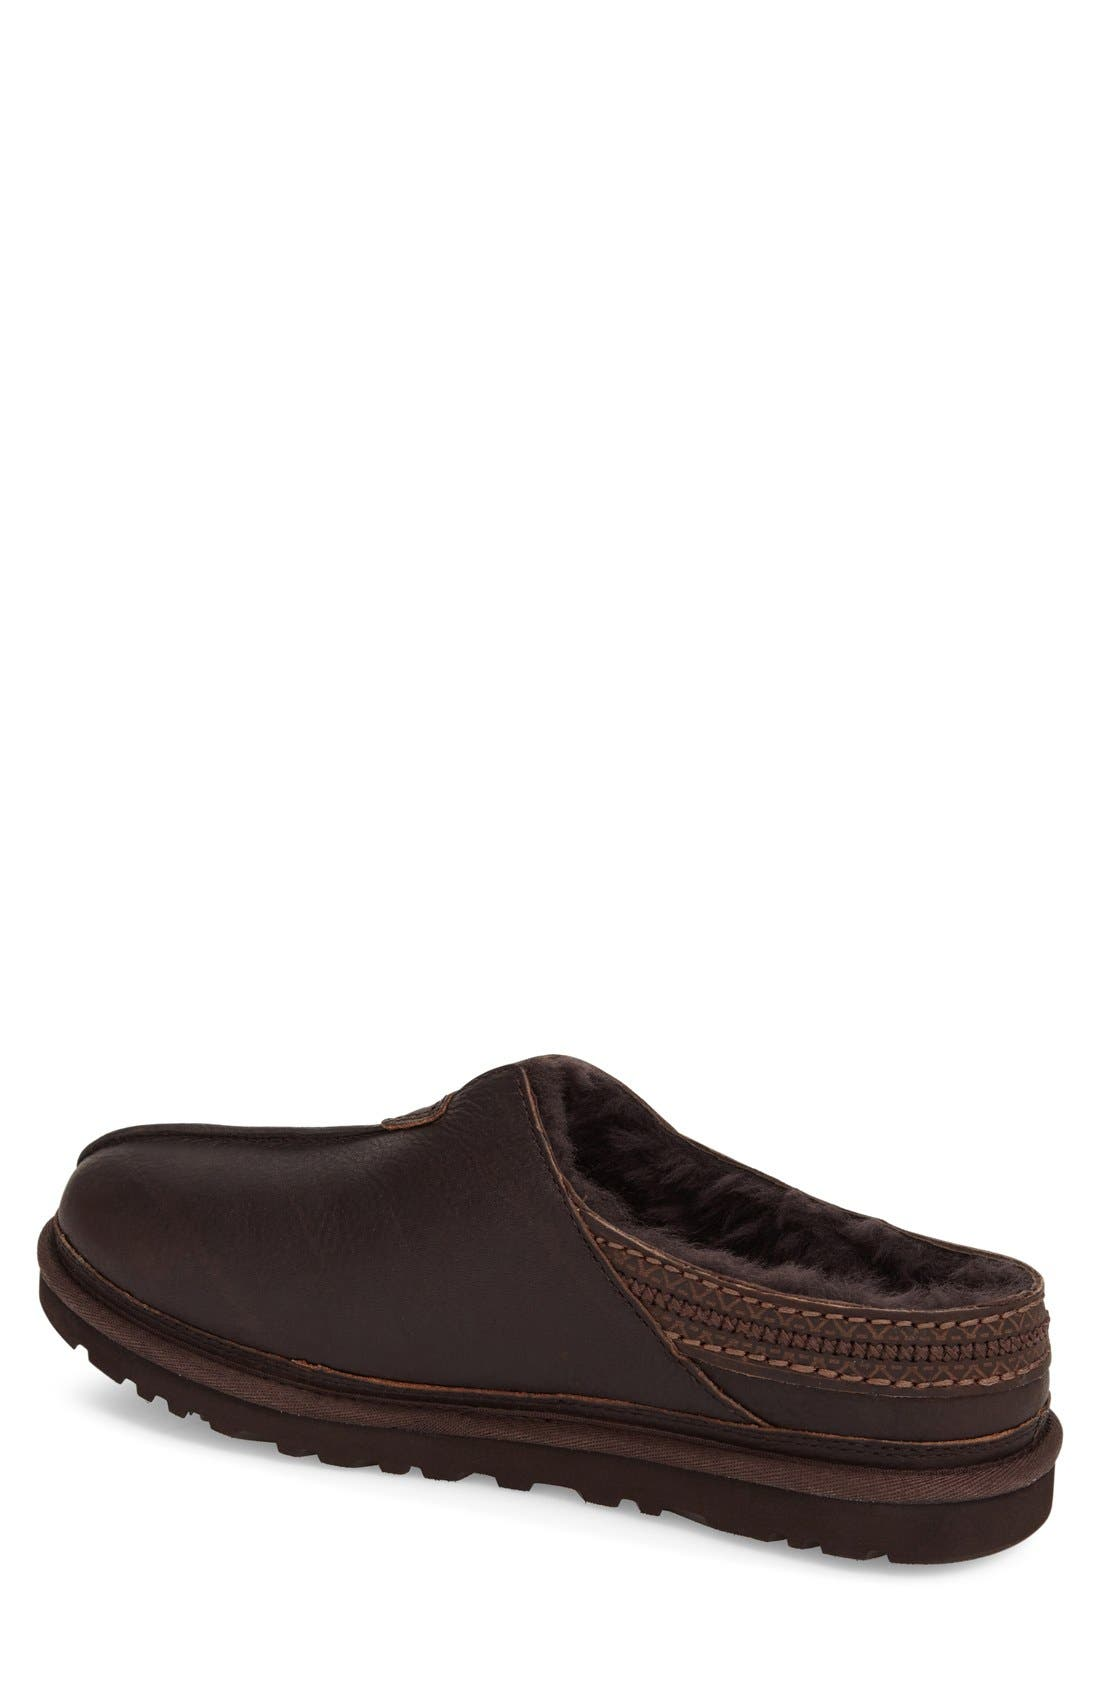 Alternate Image 2  - UGG® Neuman Slipper (Men)